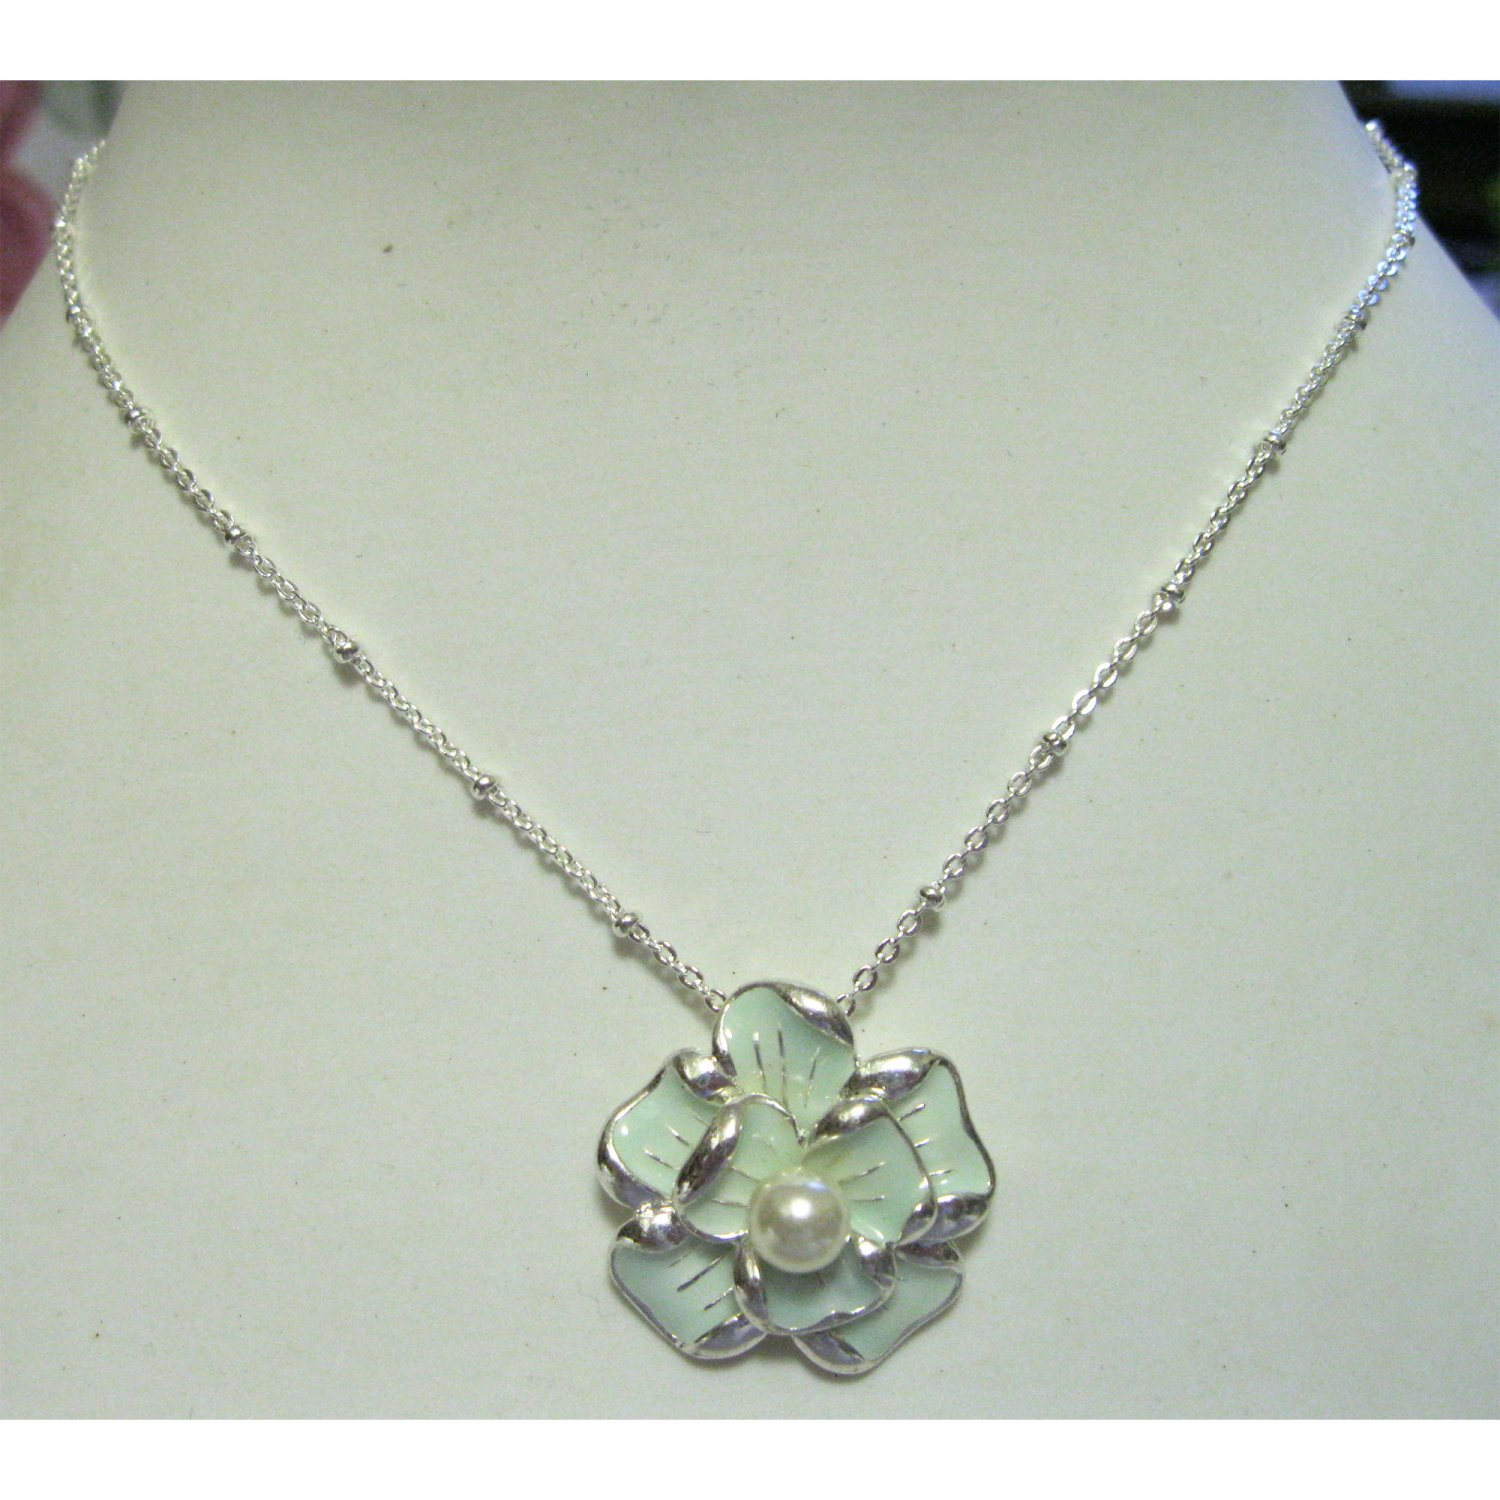 on SALE!! Blue flower pendant with pearl center trendy fashion necklace{1705N}